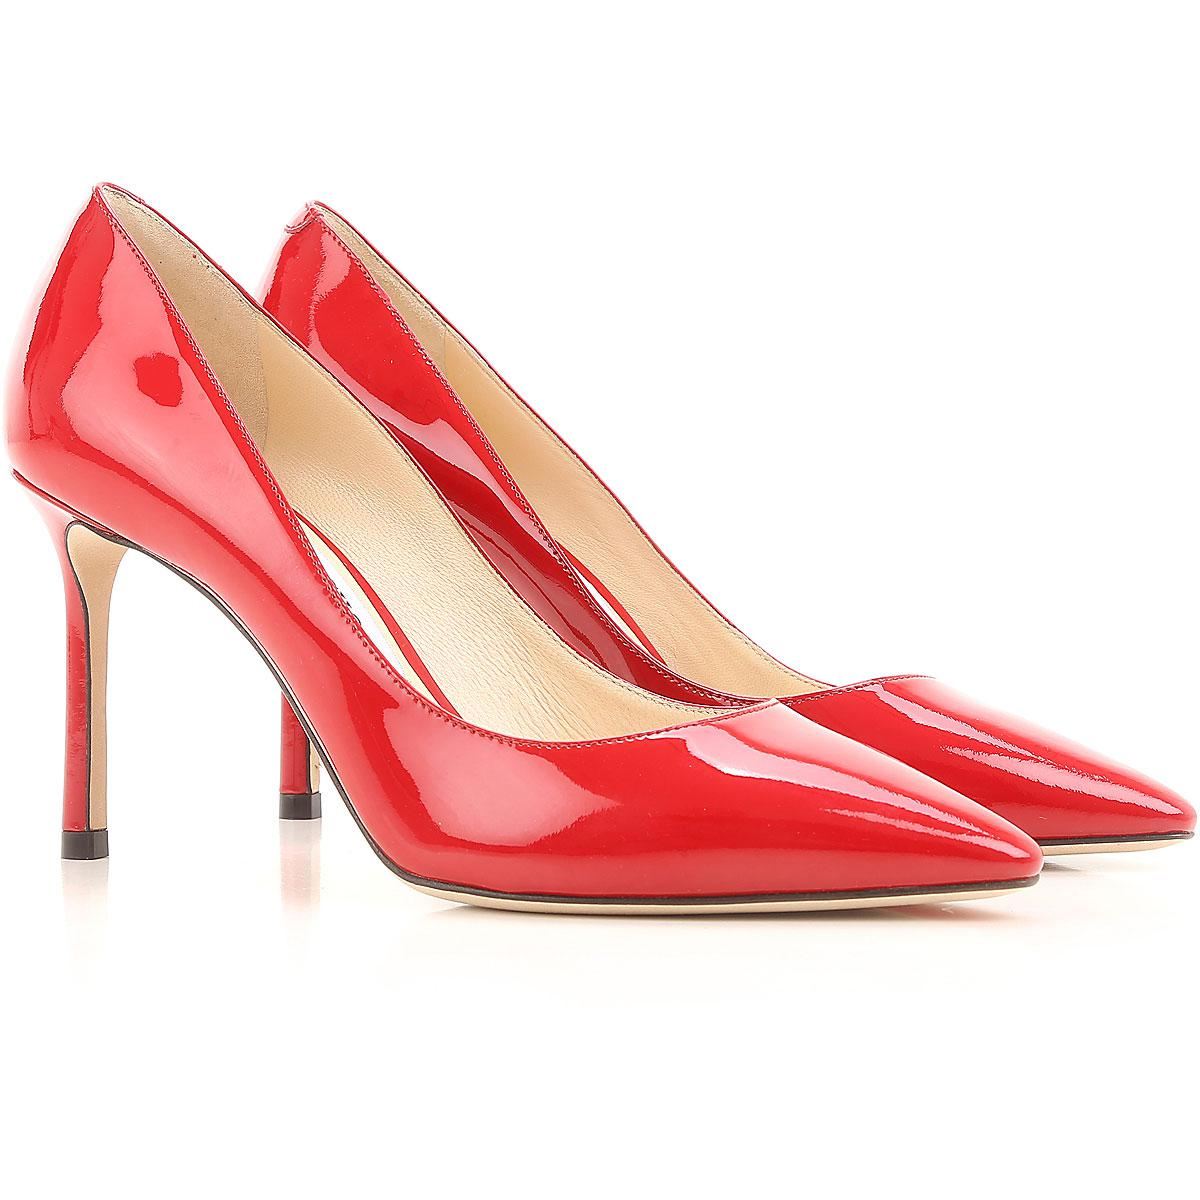 Jimmy Choo Shoes For Women In Red Lyst